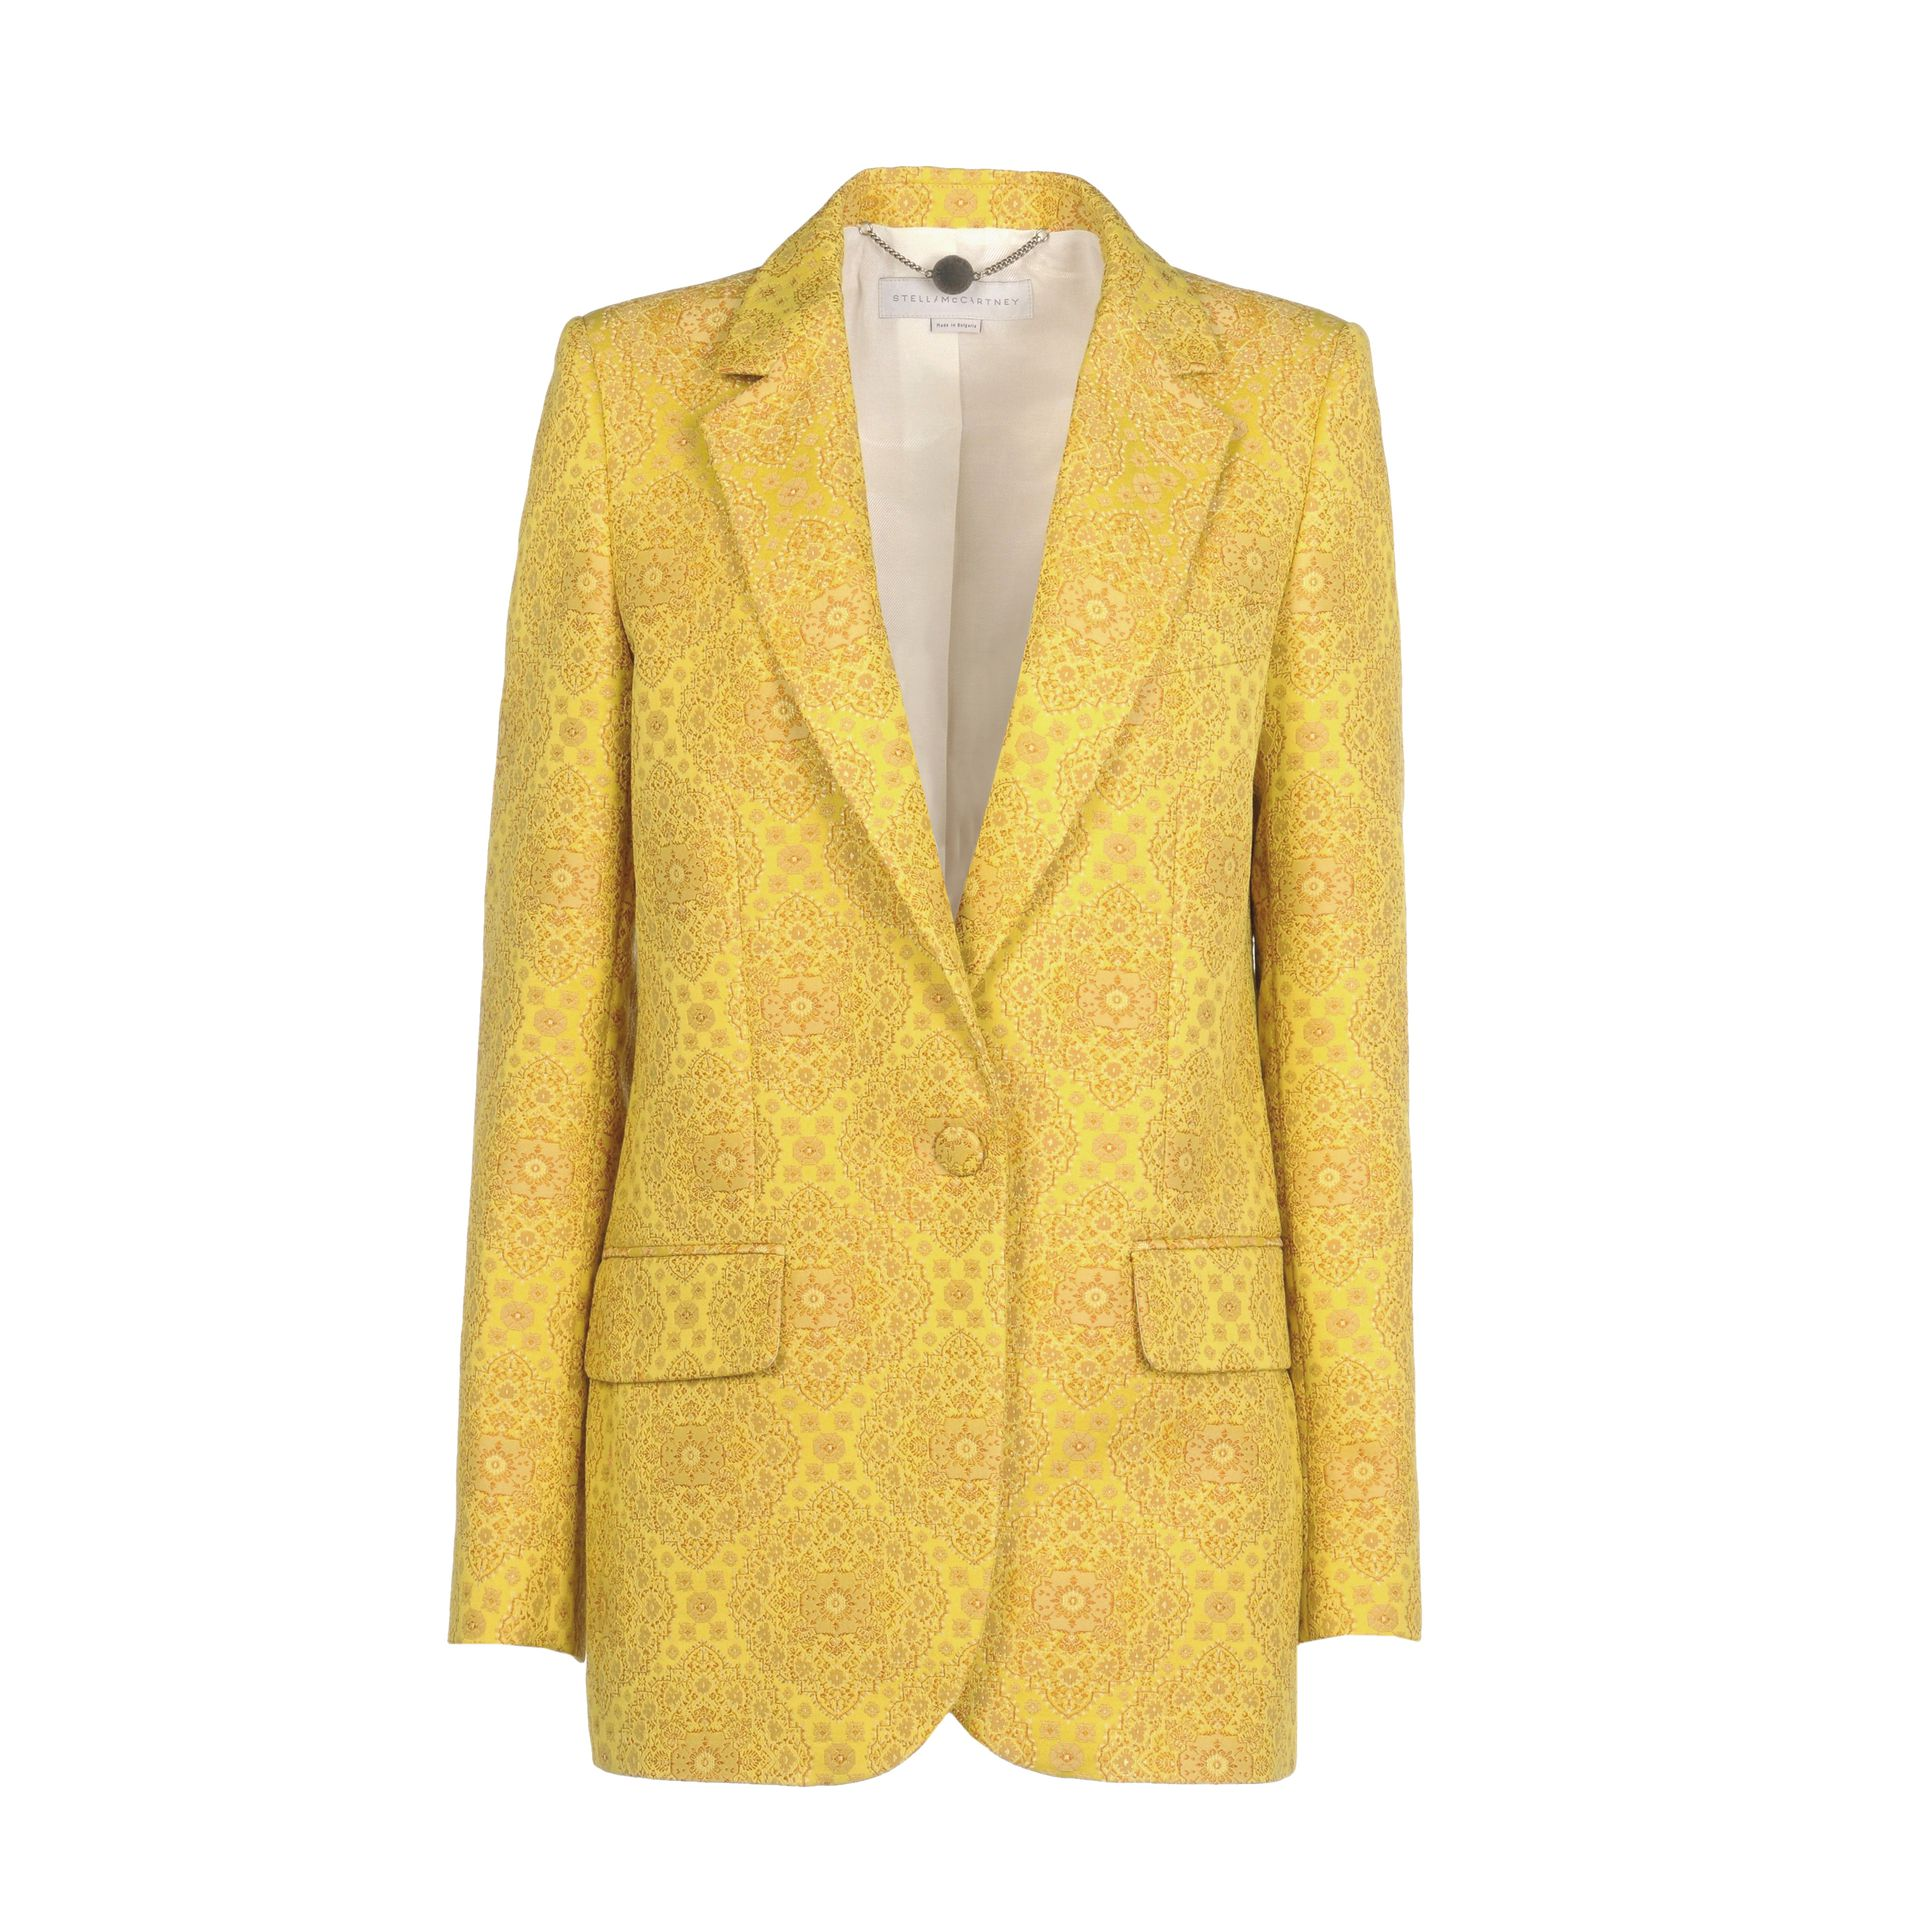 Women s STELLA McCARTNEY Blazer - Coats & jackets - Shop on the